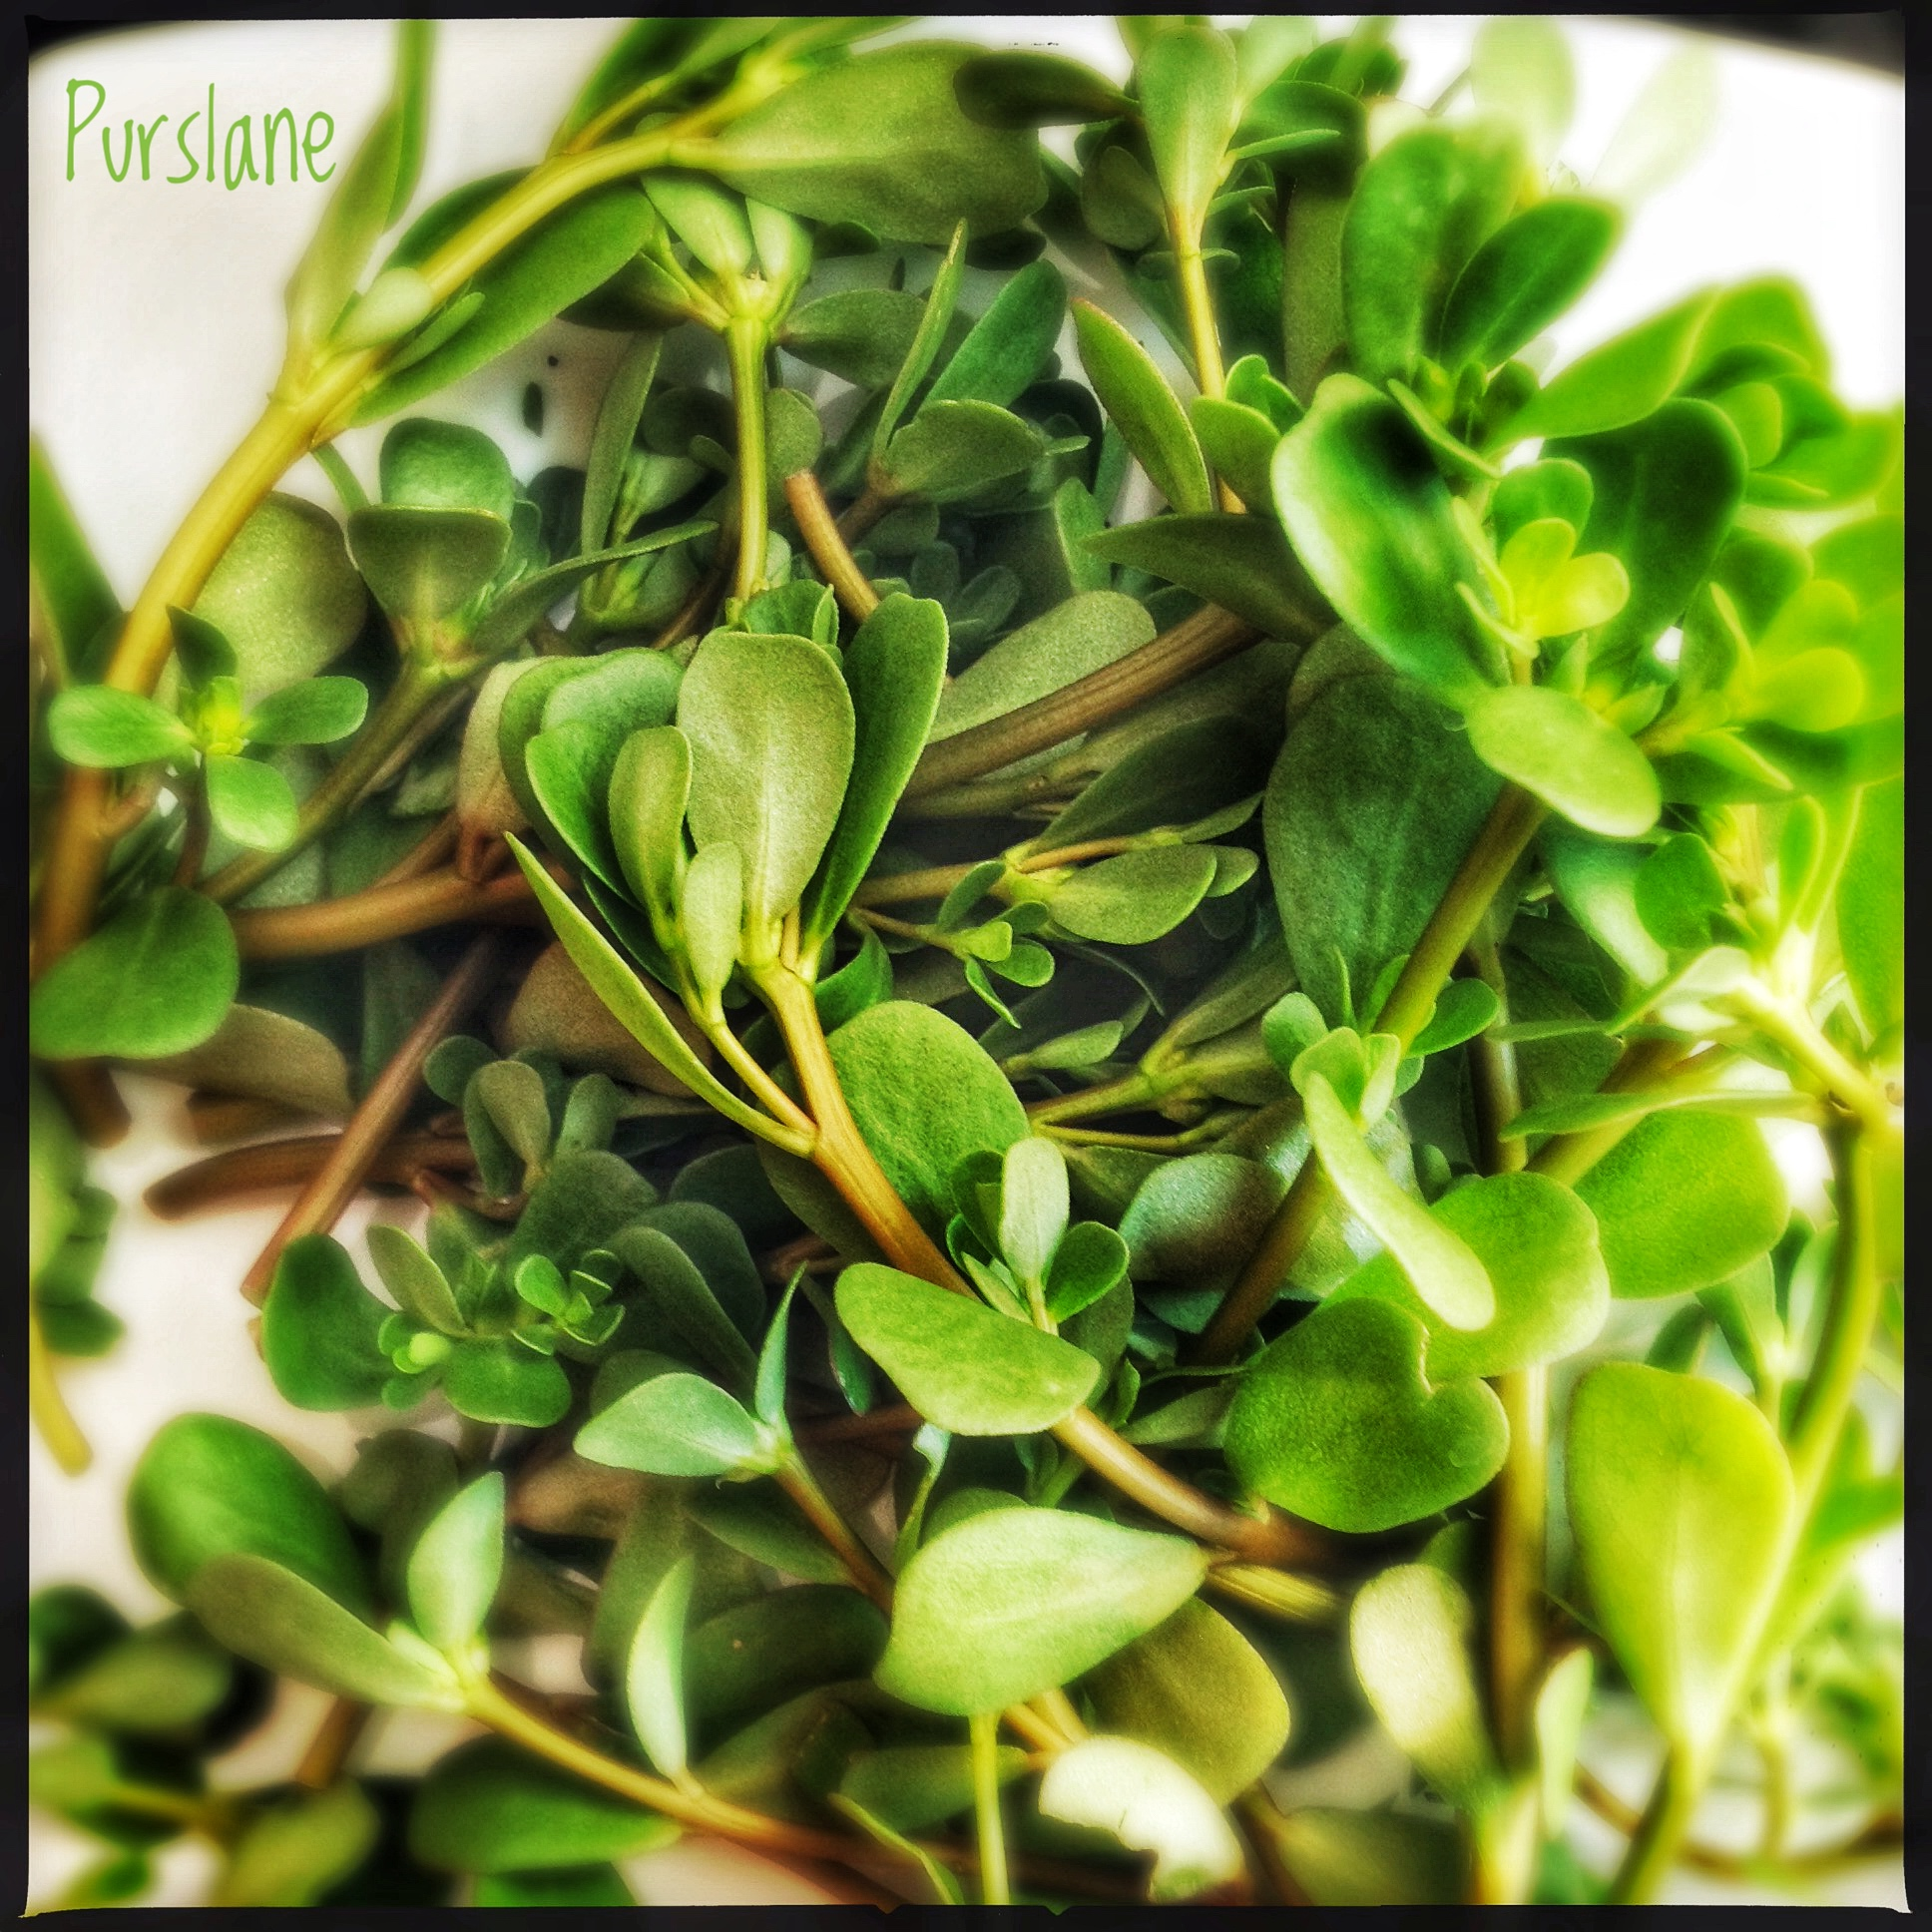 Ingredients: Purslane | Pigweed